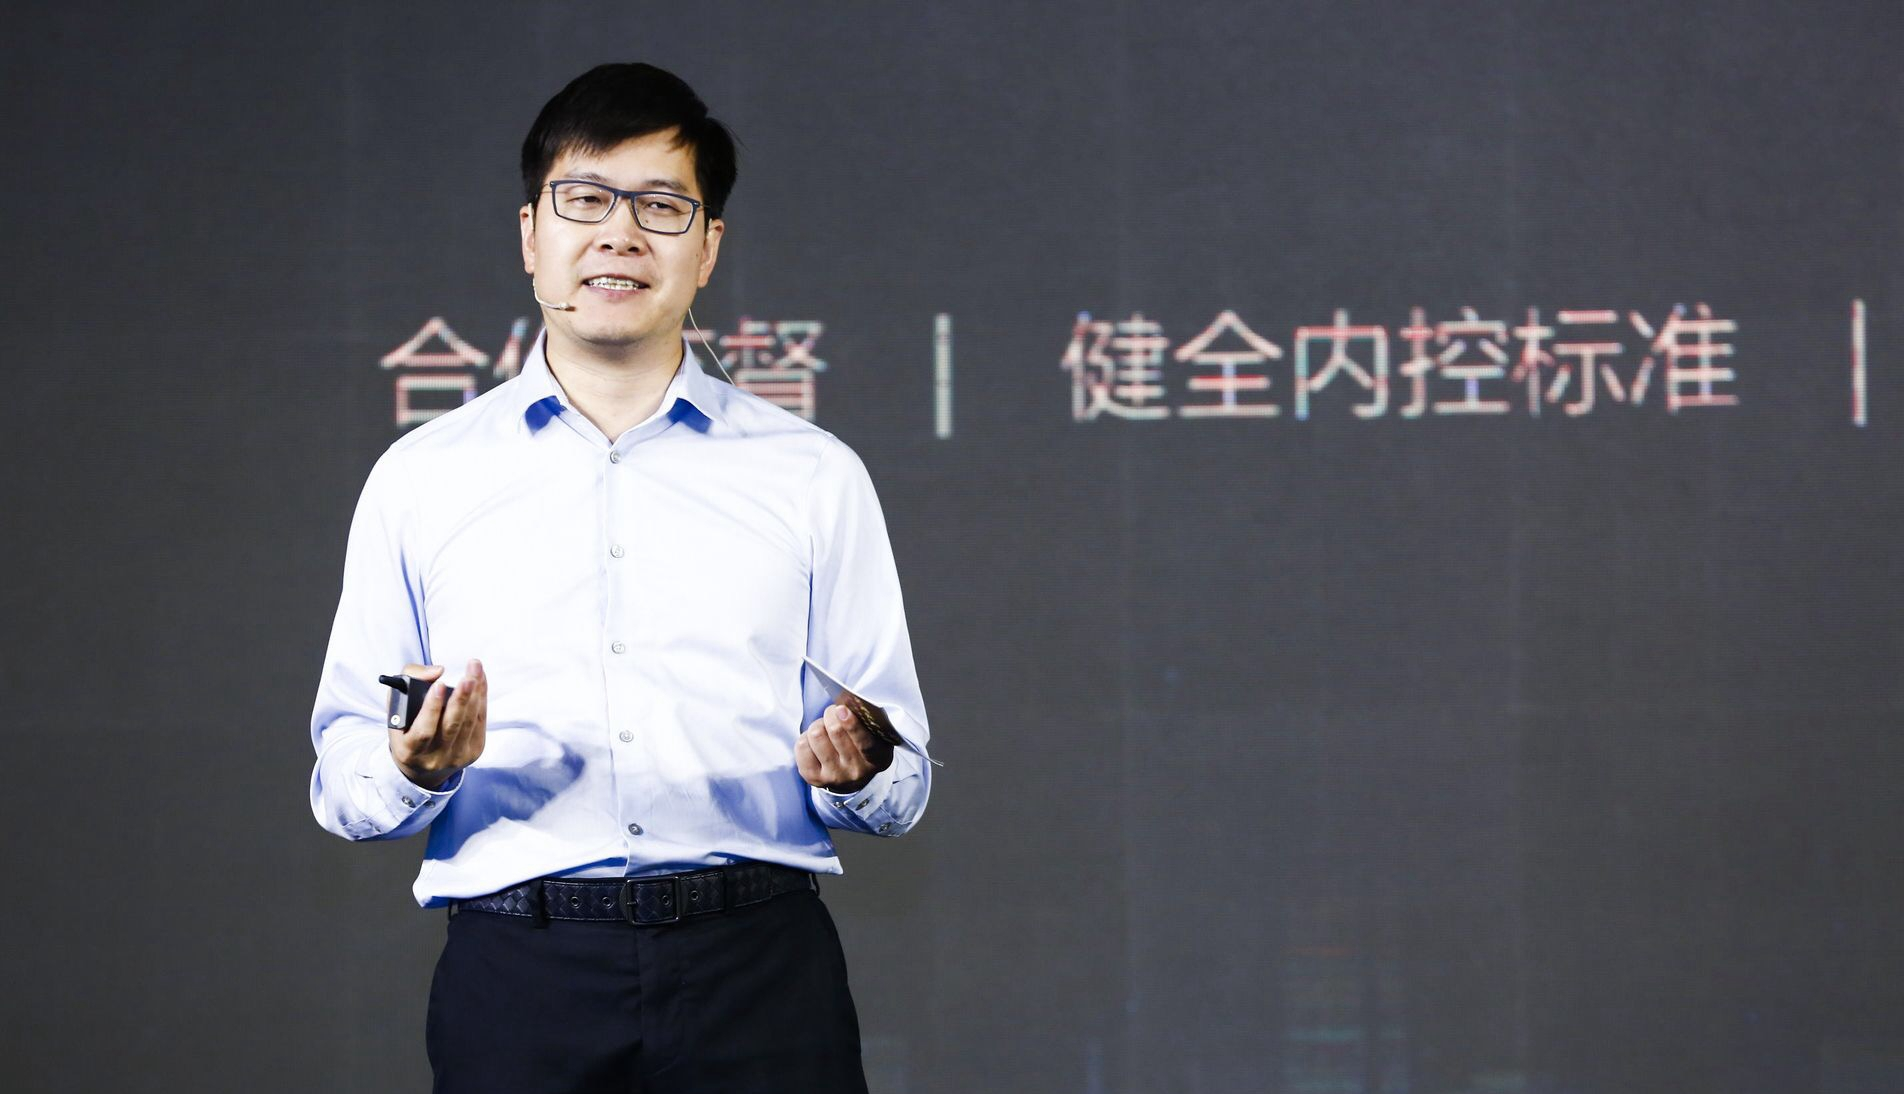 Yao Jinbo, CEO of 58.com Inc, speaks at a press conference in Beijing on June 12. [Photo courtesy of 58.com Inc]